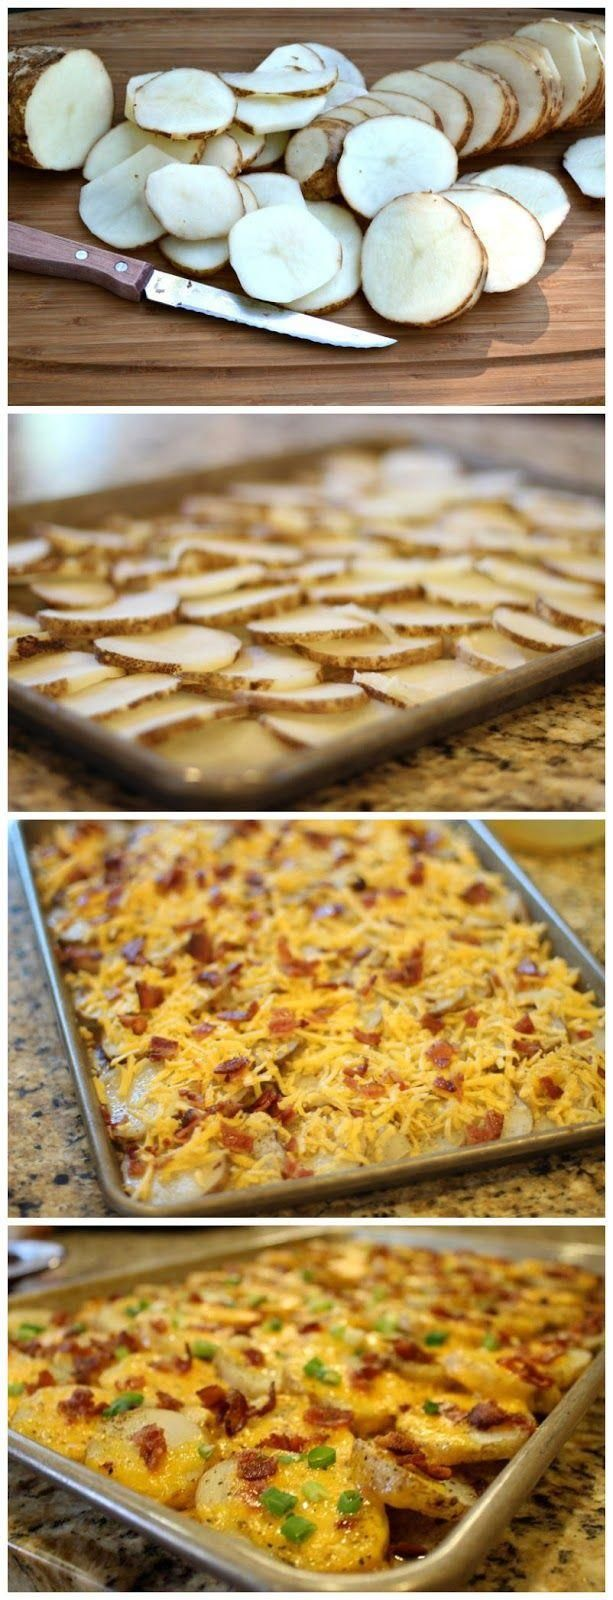 Cheesy bacon potato bites- Looks like what I used to serve at T.G.I. Fridays back in the 70s- Yummy!